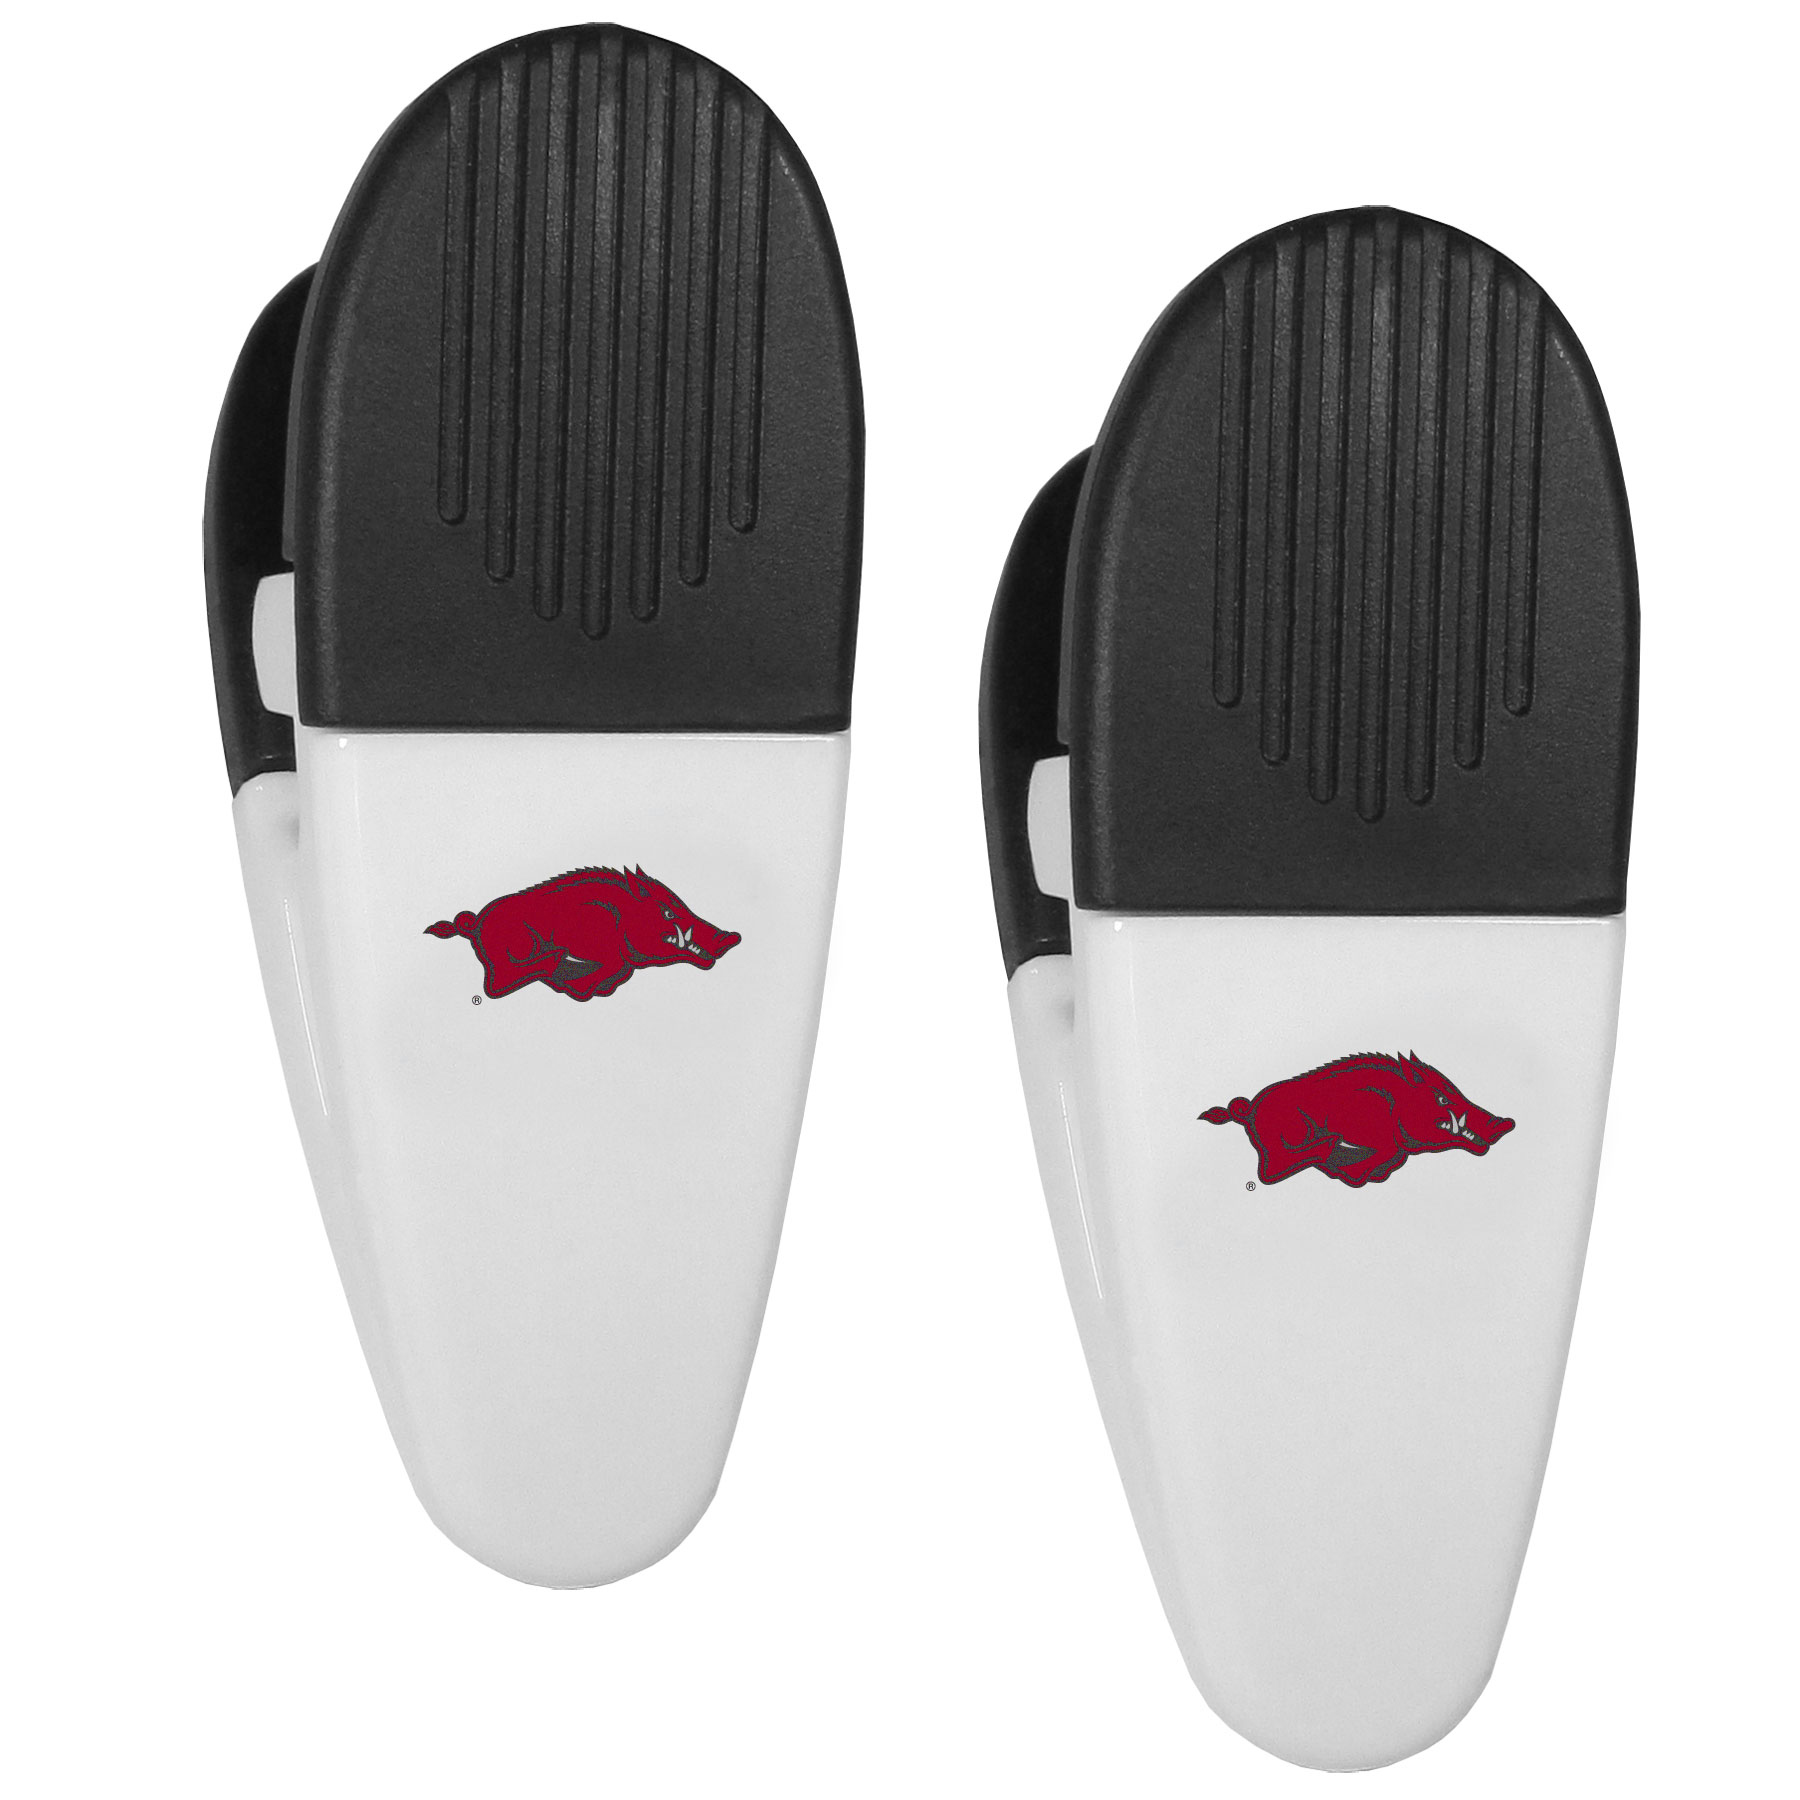 Arkansas Razorbacks Mini Chip Clip Magnets, 2 pk - Our Arkansas Razorbacks chip clip magnets feature a crisp team logo on the front of the clip. The clip is perfect for sealing chips for freshness and with the powerful magnet on the back it can be used to attach notes to the fridge or hanging your child's artwork. Set of 2 magnet clips, each clip is 3.5 inches tall and 1.25 inch wide.